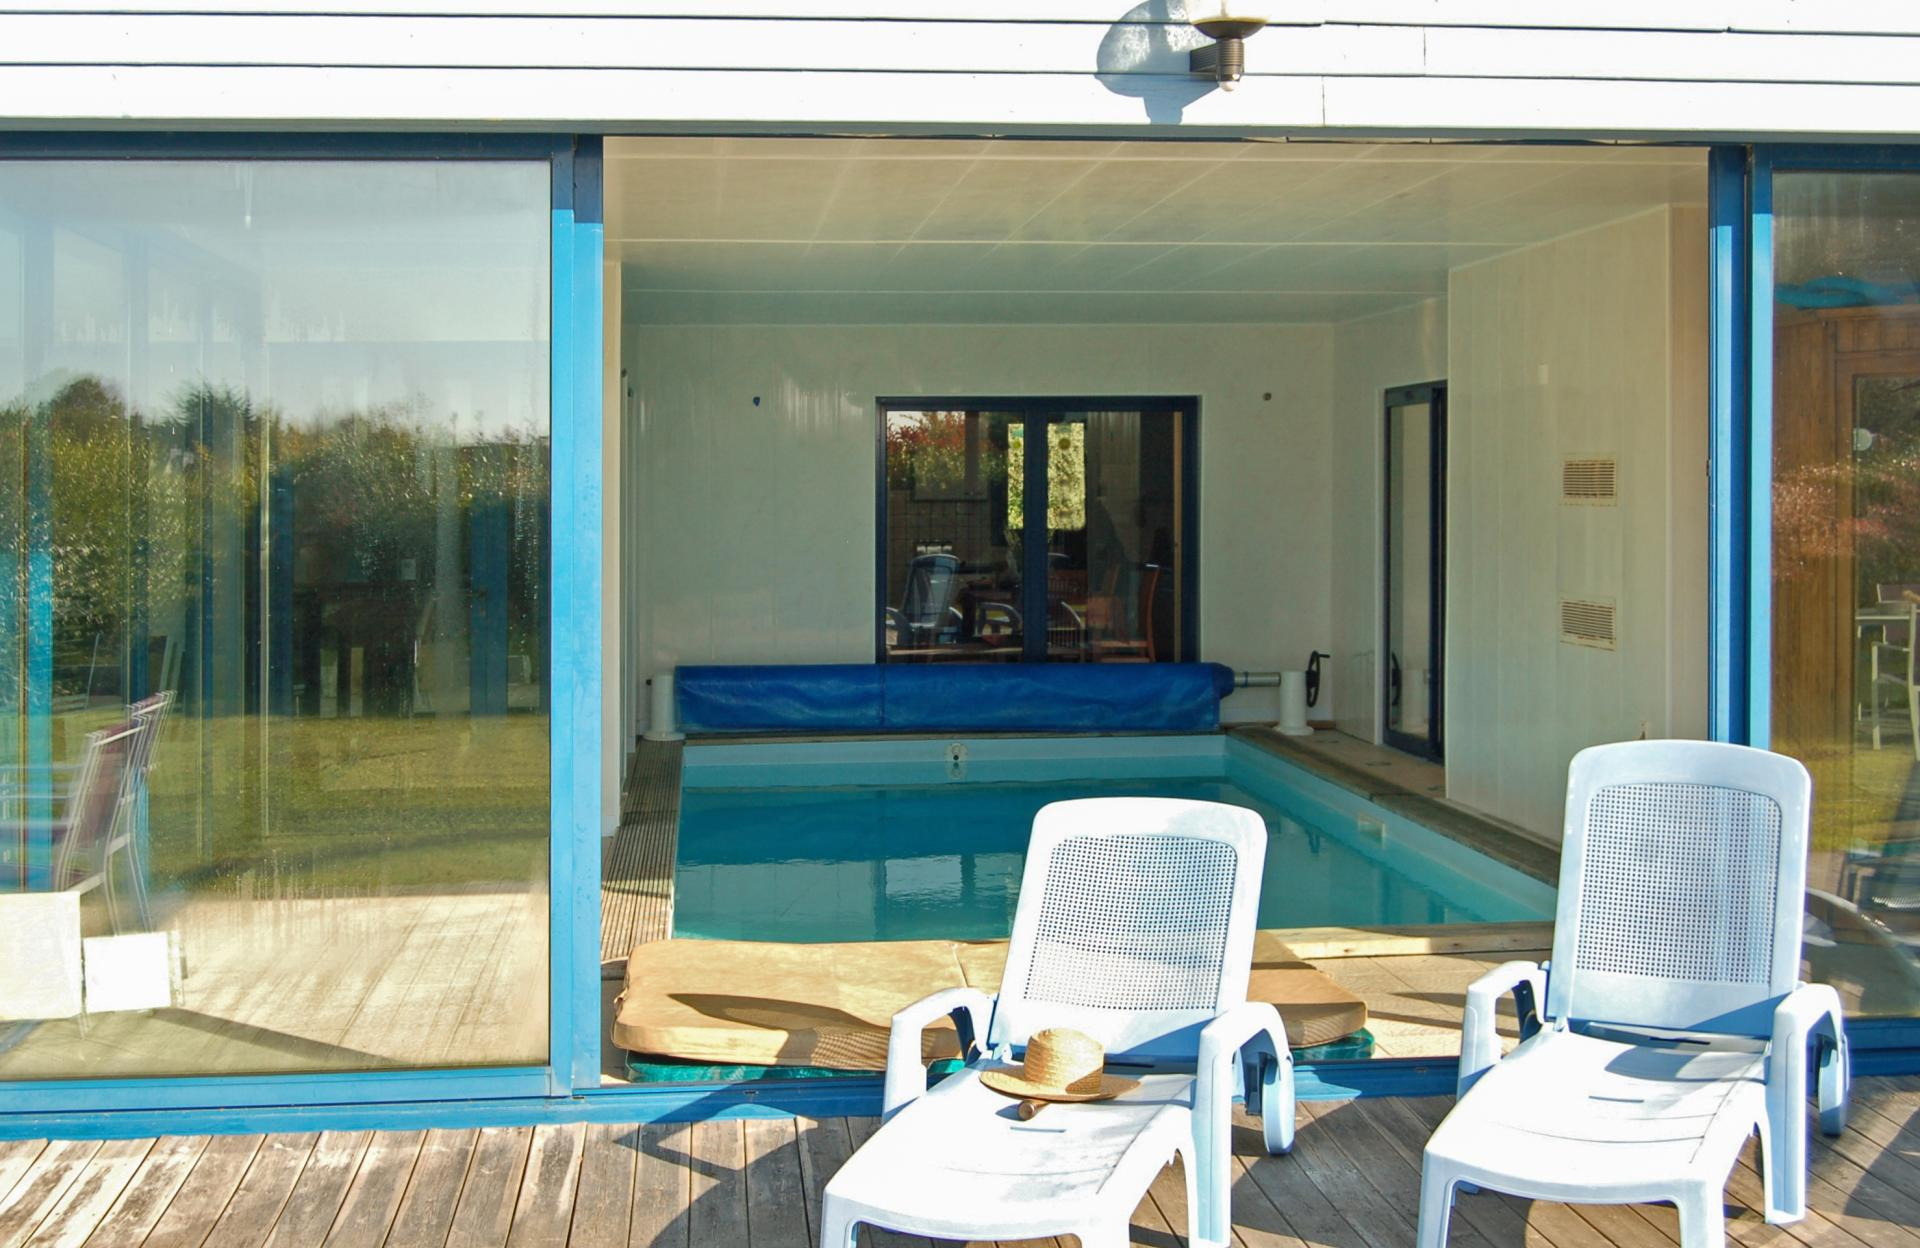 View of indoor pool from outside, Annick, Brittany, Moelan-sur-mer.